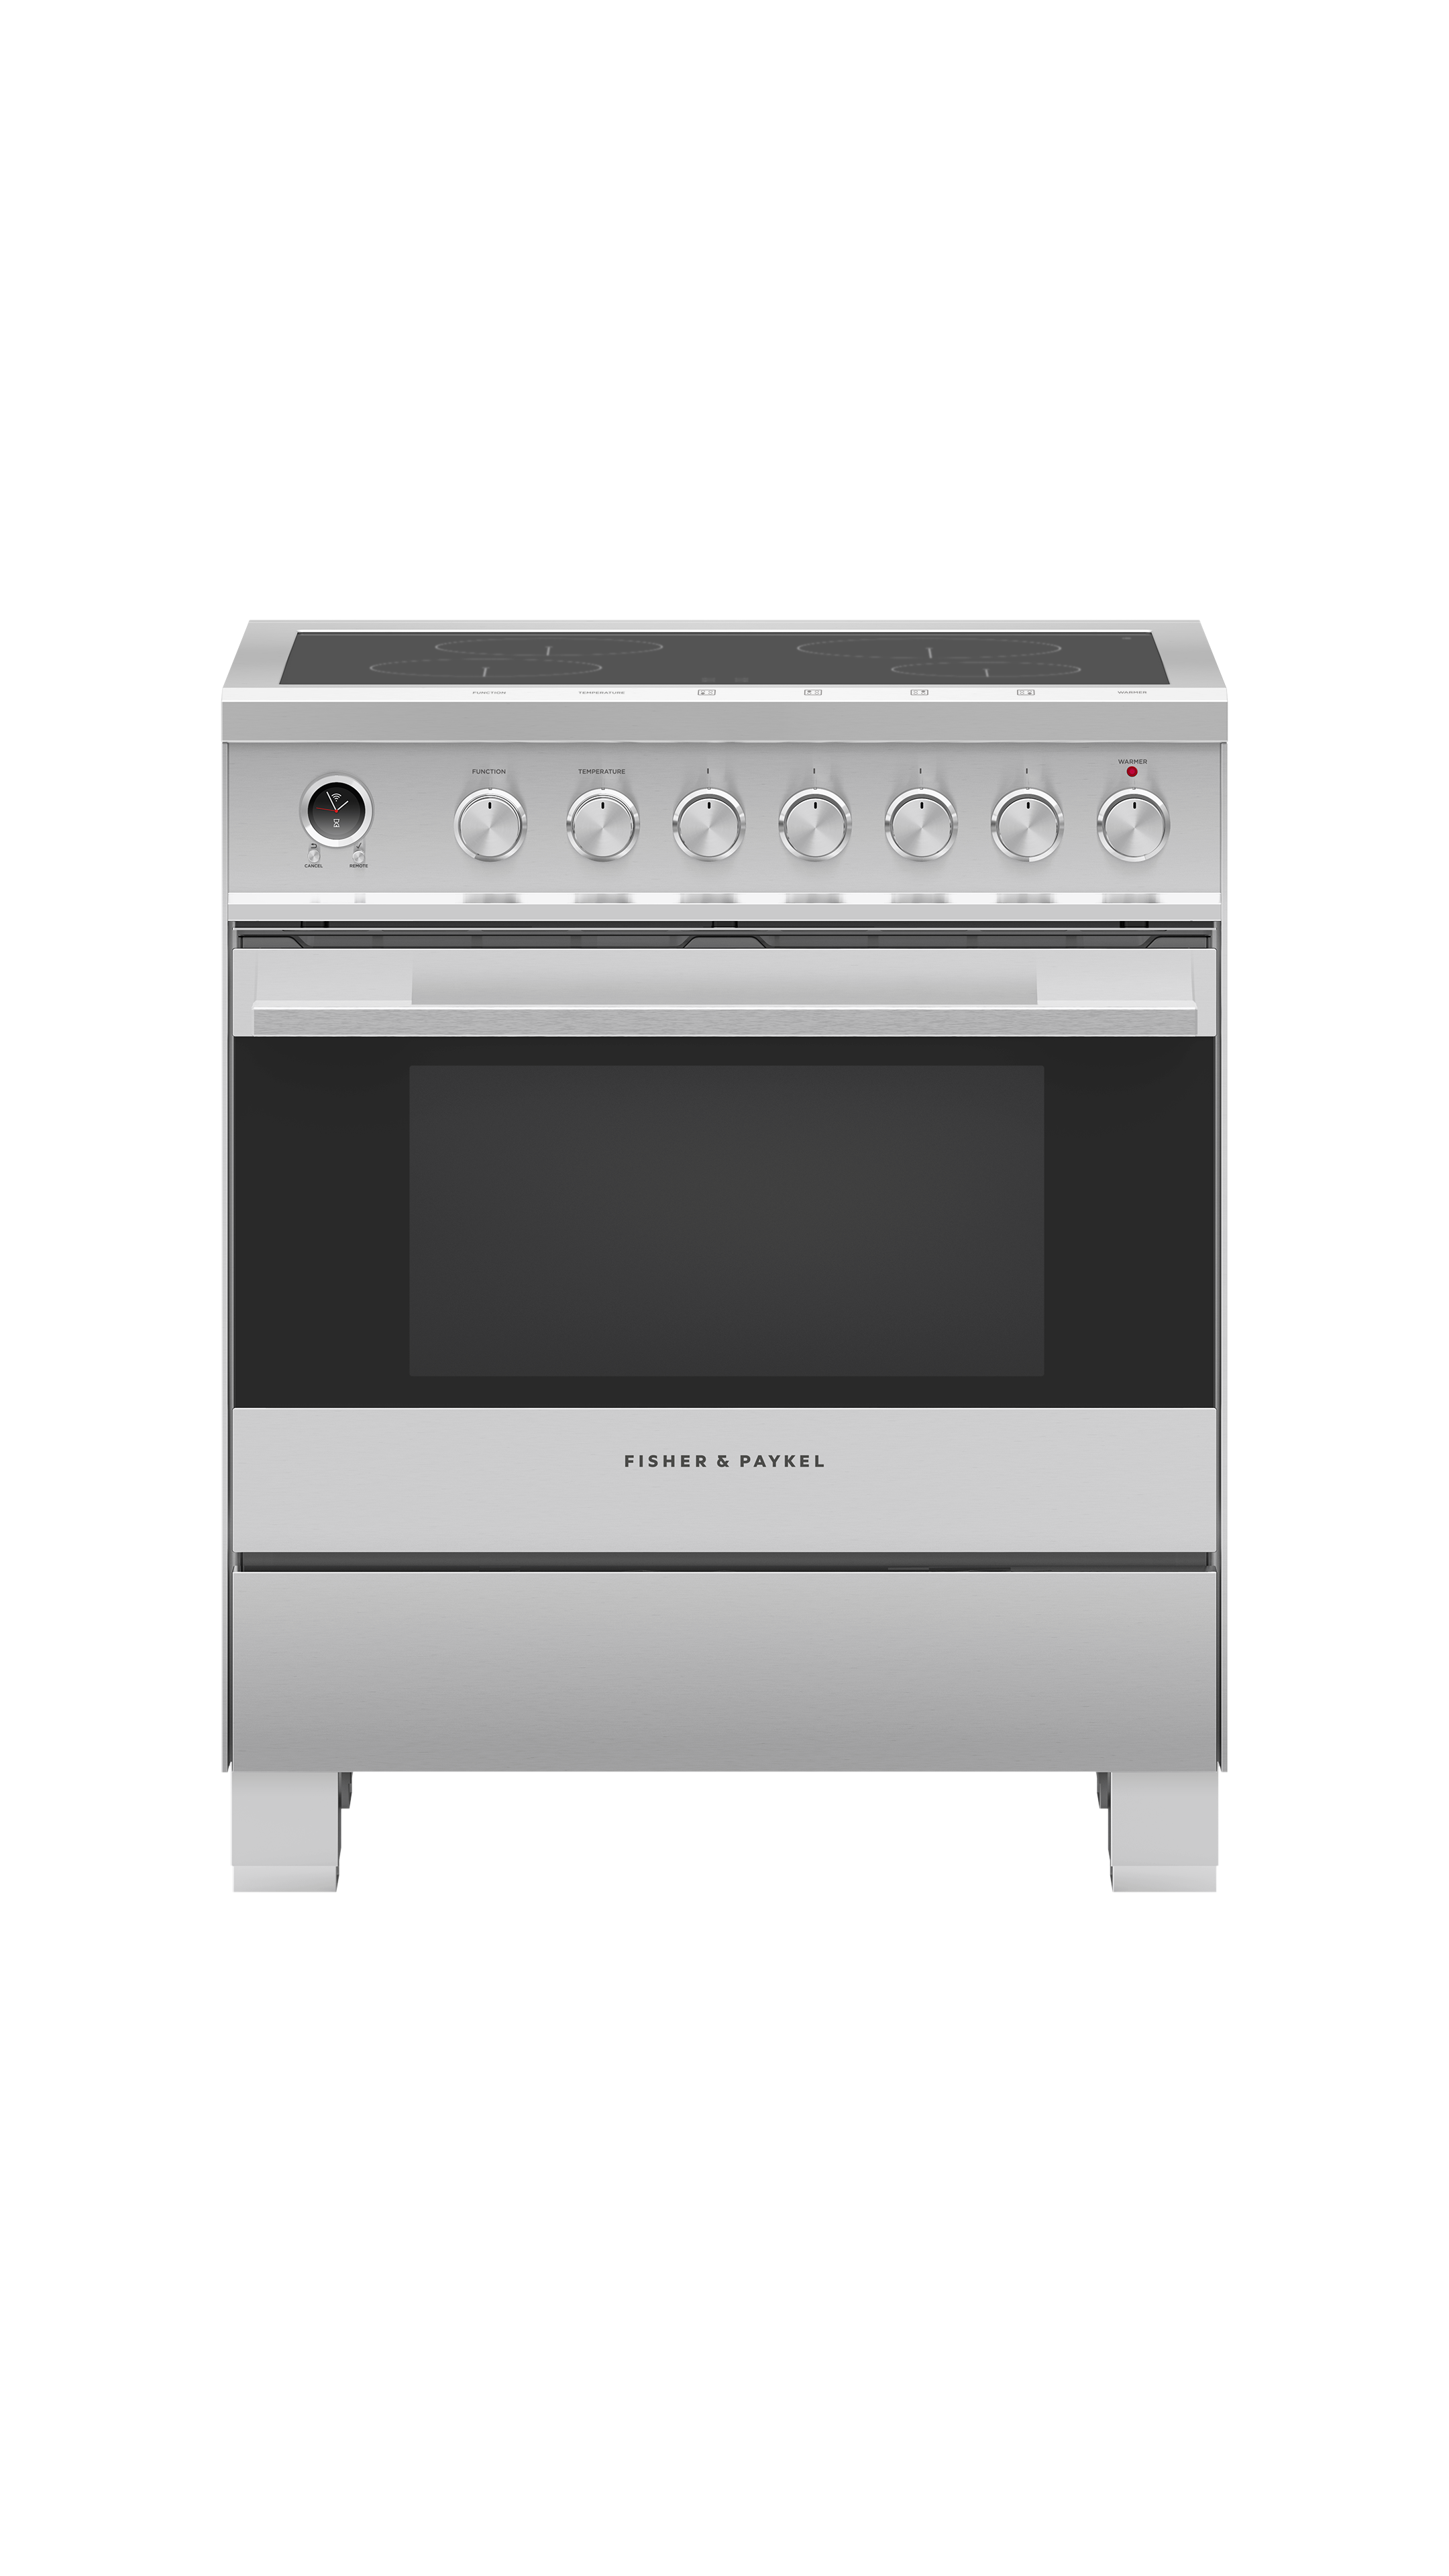 """Model: OR30SDI6X1   Fisher and Paykel Induction Range 30"""""""